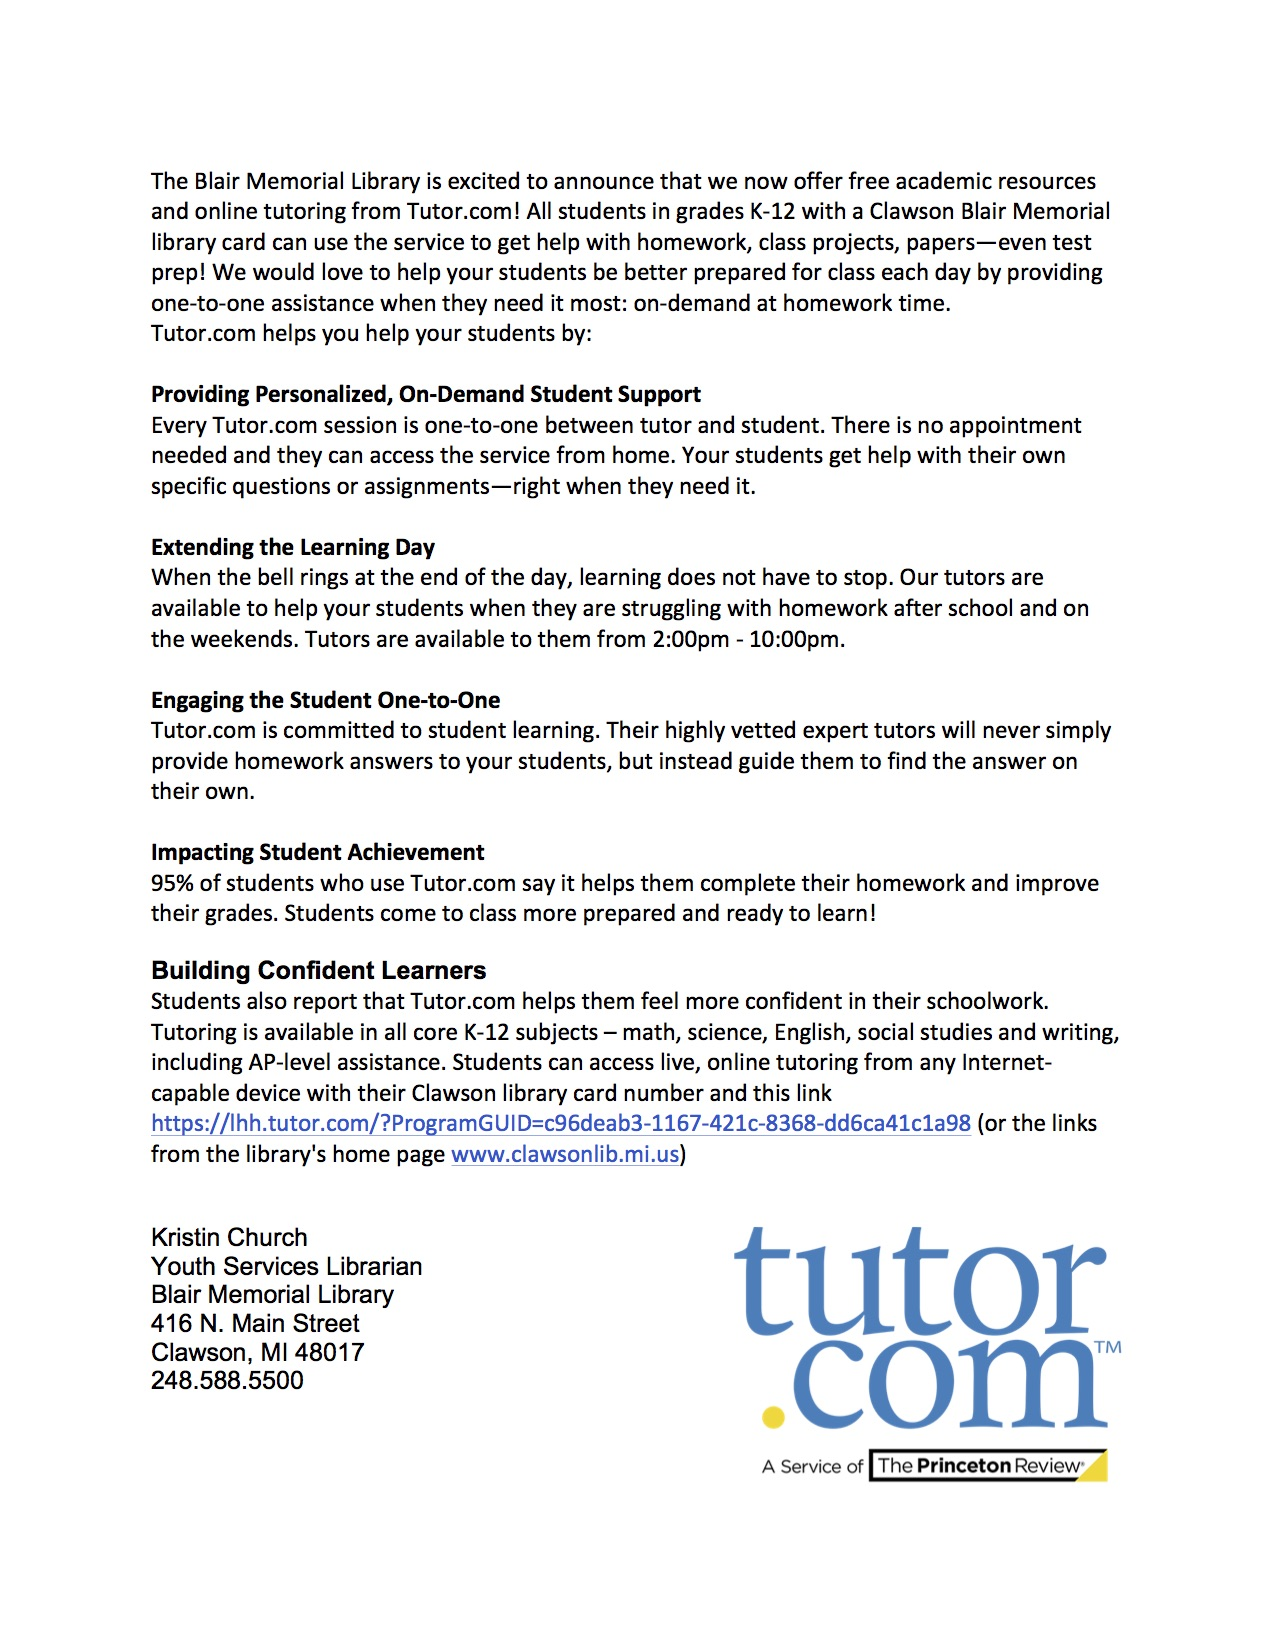 The Blair Memorial Library is excited to announce that we now offer free academic resources and online tutoring from Tutor.com! All students in grades K-12 with a Clawson Blair Memorial library card can use the service to get help with homework, class projects, papers—even test prep! We would love to help your students be better prepared for class each day by providing one-to-one assistance when they need it most: on-demand at homework time.  Tutor.com helps you help your students by:  Providing Personalized, On-Demand Student Support Every Tutor.com session is one-to-one between tutor and student. There is no appointment needed and they can access the service from home. Your students get help with their own specific questions or assignments—right when they need it.  Extending the Learning Day When the bell rings at the end of the day, learning does not have to stop. Our tutors are available to help your students when they are struggling with homework after school and on the weekends. Tutors are available to them from 2:00pm - 10:00pm.  Engaging the Student One-to-One Tutor.com is committed to student learning. Their highly vetted expert tutors will never simply provide homework answers to your students, but instead guide them to find the answer on their own.  Impacting Student Achievement 95% of students who use Tutor.com say it helps them complete their homework and improve their grades. Students come to class more prepared and ready to learn!  Building Confident Learners Students also report that Tutor.com helps them feel more confident in their schoolwork.  Tutoring is available in all core K-12 subjects – math, science, English, social studies and writing, including AP-level assistance. Students can access live, online tutoring from any Internet-capable device with their Clawson library card number and this link https://lhh.tutor.com/?ProgramGUID=c96deab3-1167-421c-8368-dd6ca41c1a98 (or the links from the library's home page www.clawsonlib.mi.us)    Kristin Church Youth Services Librarian Blair Memorial Library 416 N. Main Street Clawson, MI 48017 248.588.5500